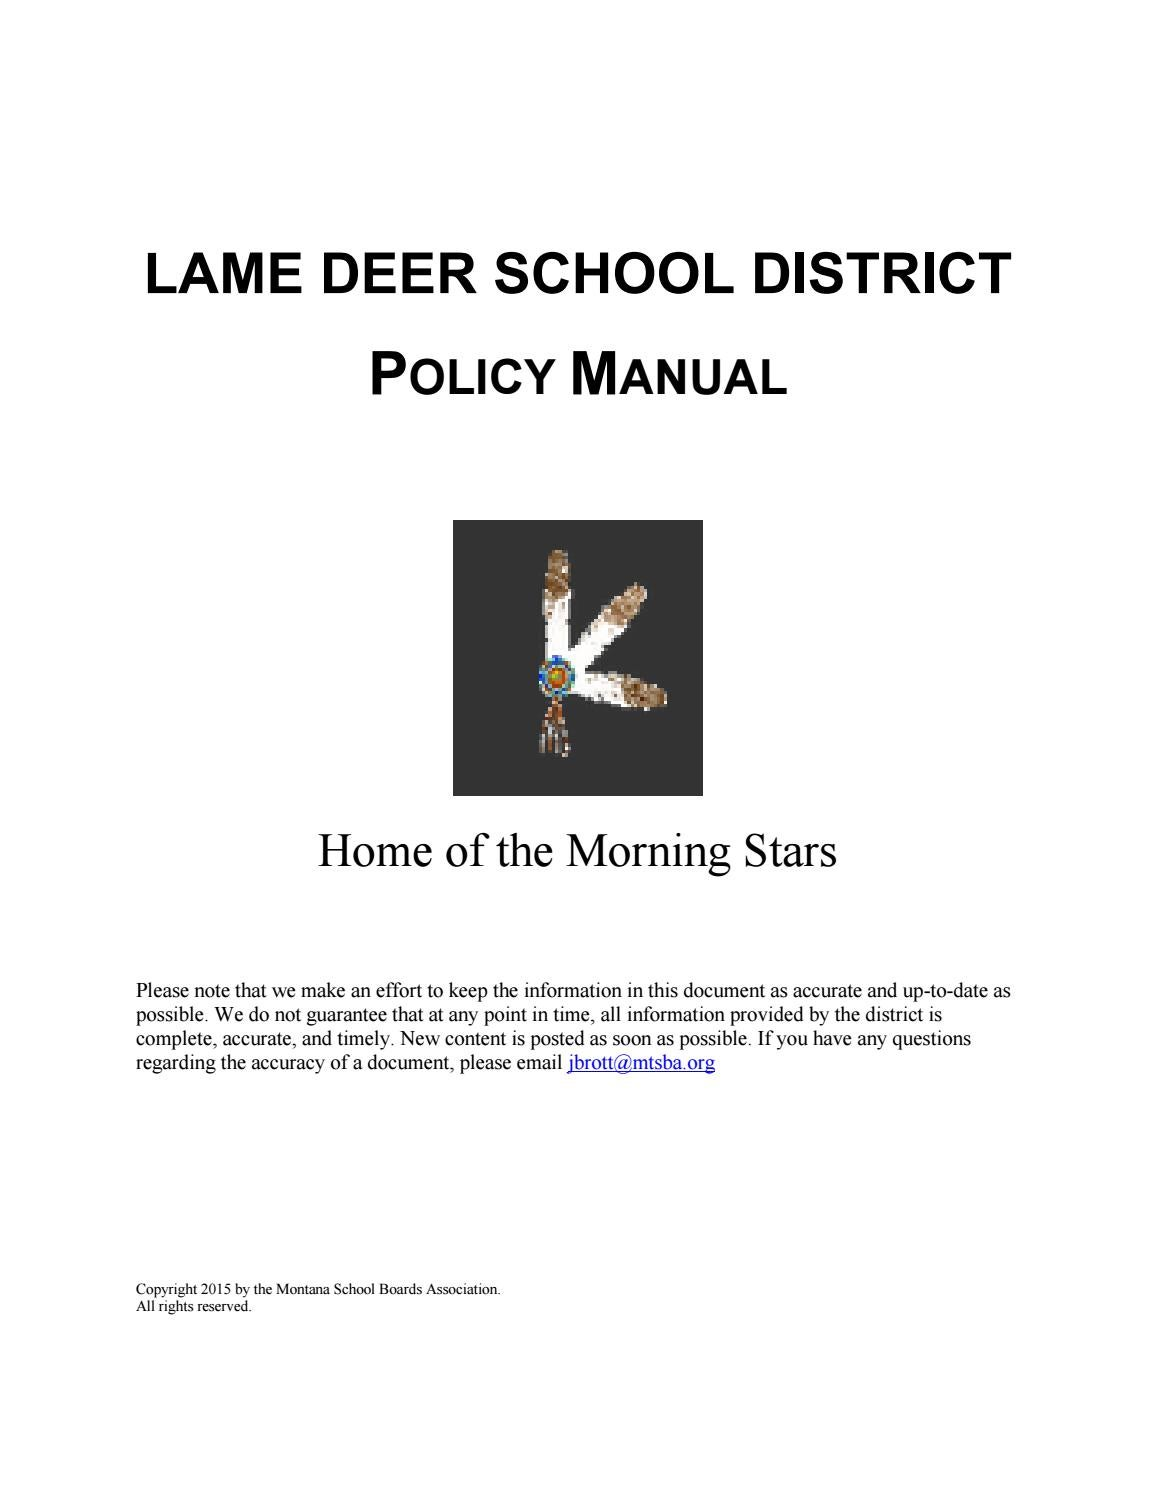 Lame Deer School District Policy Manual by Montana School Boards